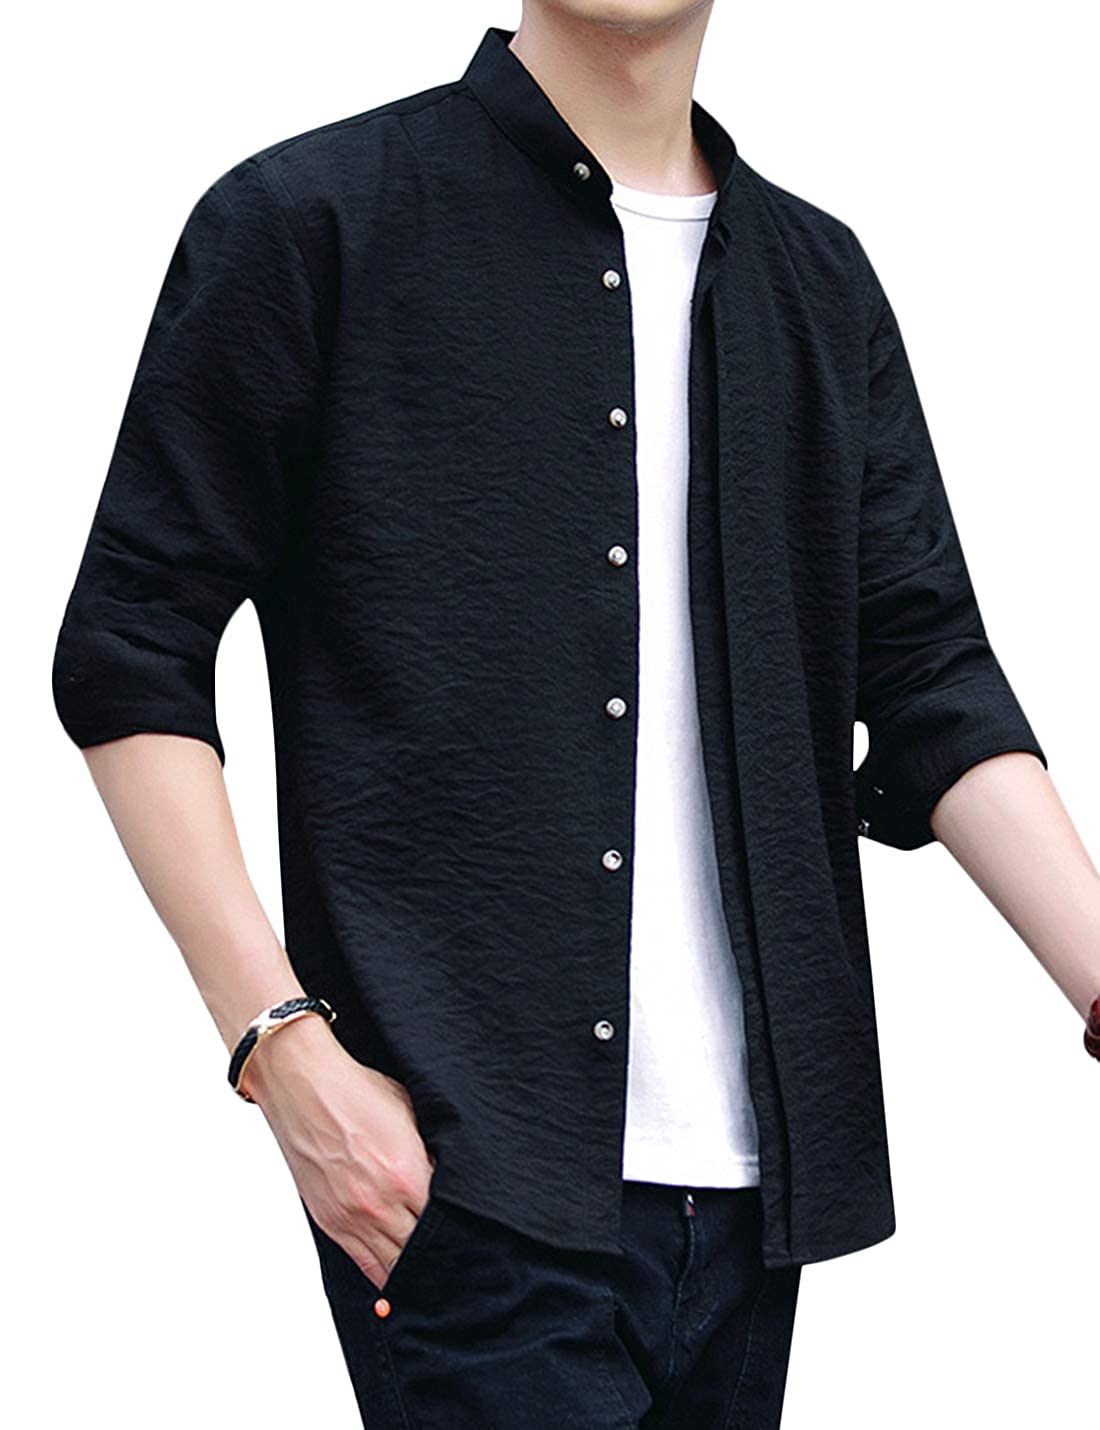 Tanming Mens Autumn Casual Regular-Fit Long Sleeve Stand Collar Button Down Shirt